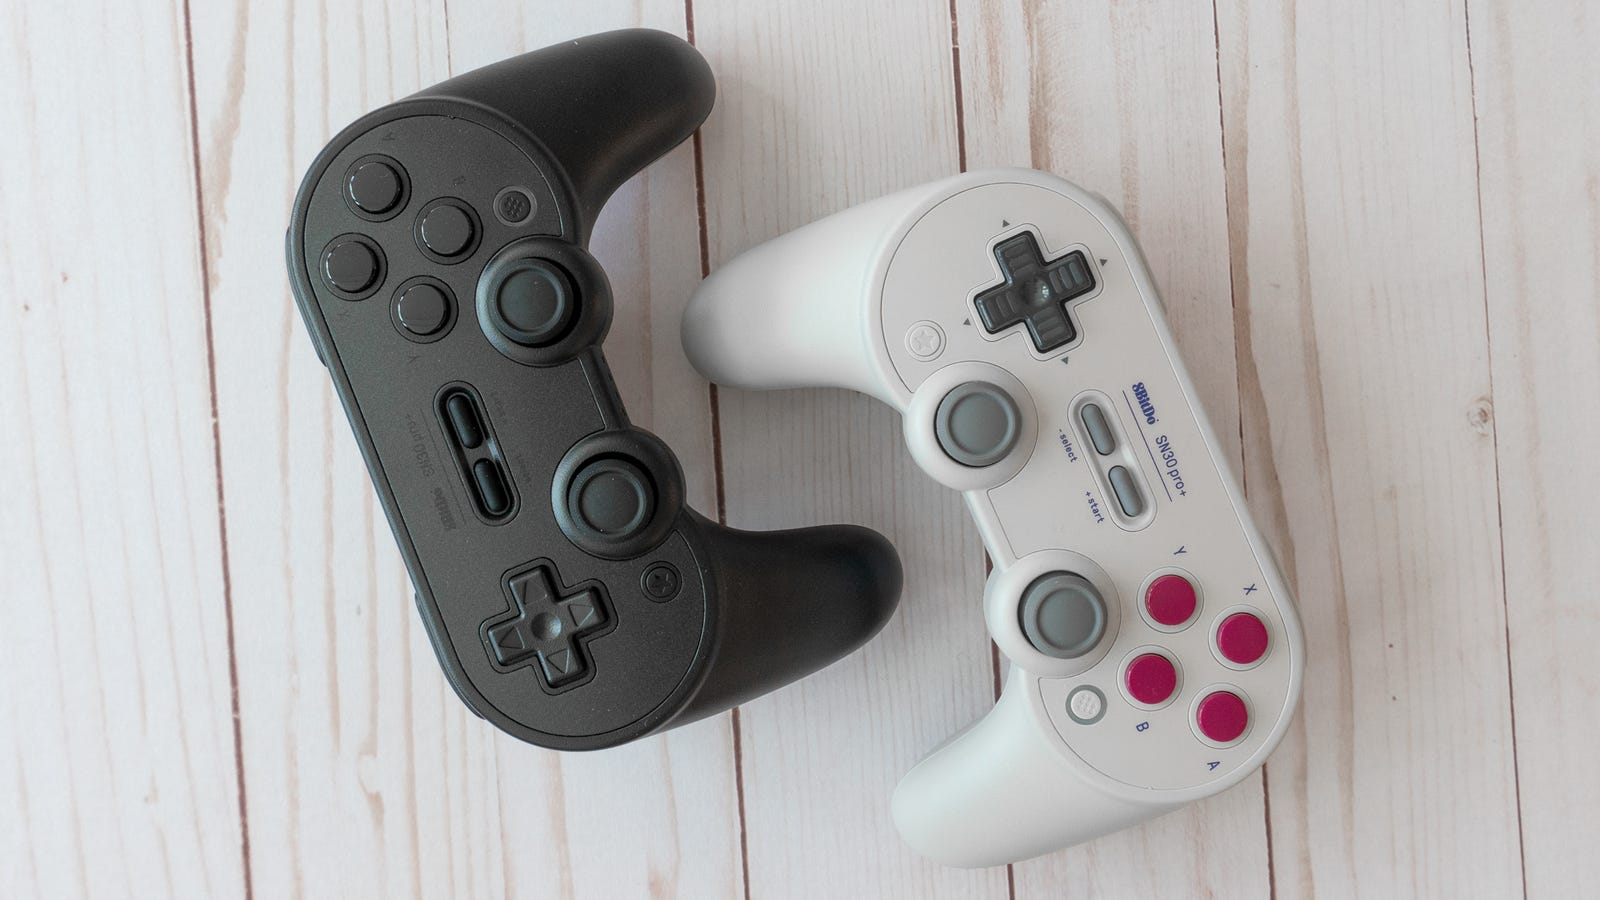 The SN30 Pro+ is available in three colors including an all-black option, and versions mirroring the Game Boy and SNES' button colors.